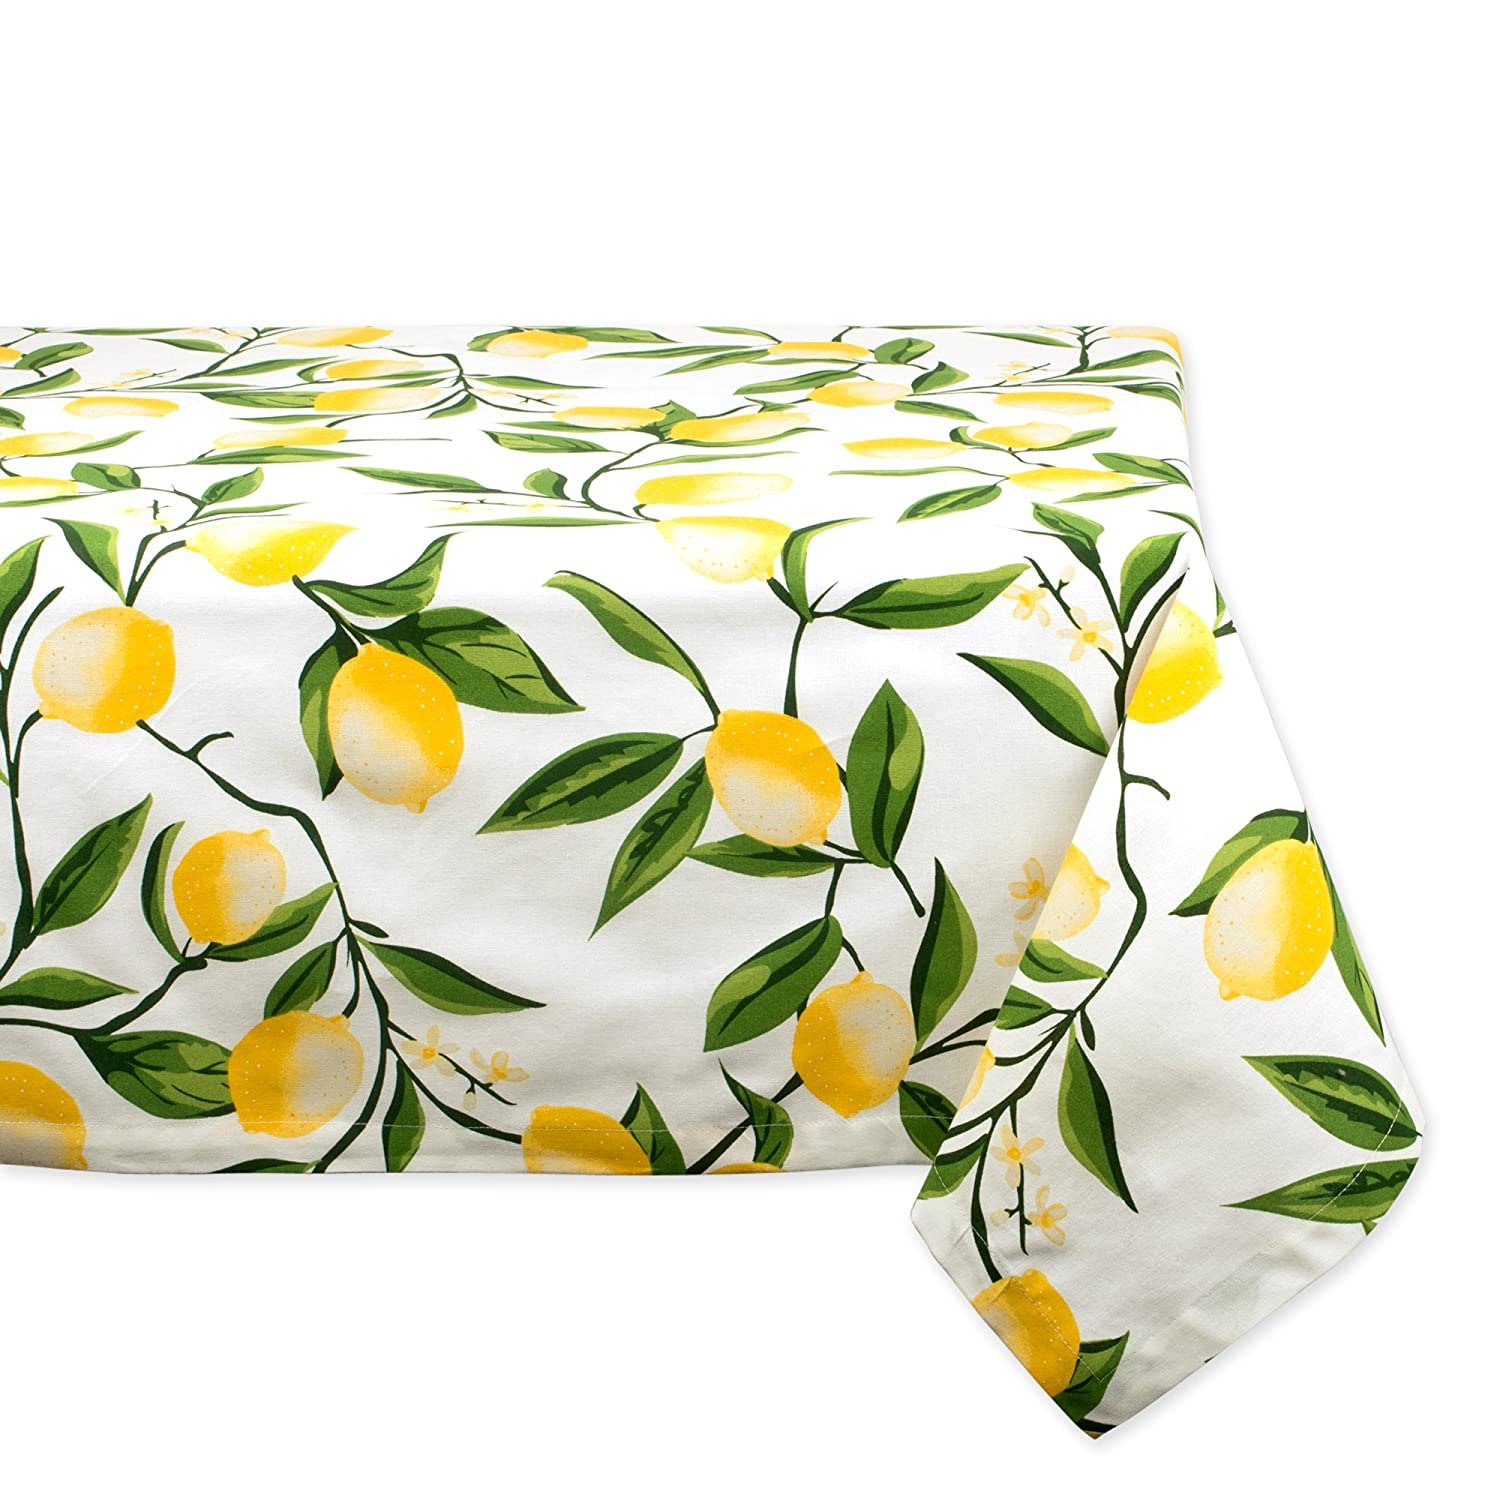 "DII Rectangular Cotton Tablecloth for Summer BBQ, Catering Events, Dinner Parties, Special Occasions or Everyday Use - 60x84"", Lemon Bliss"